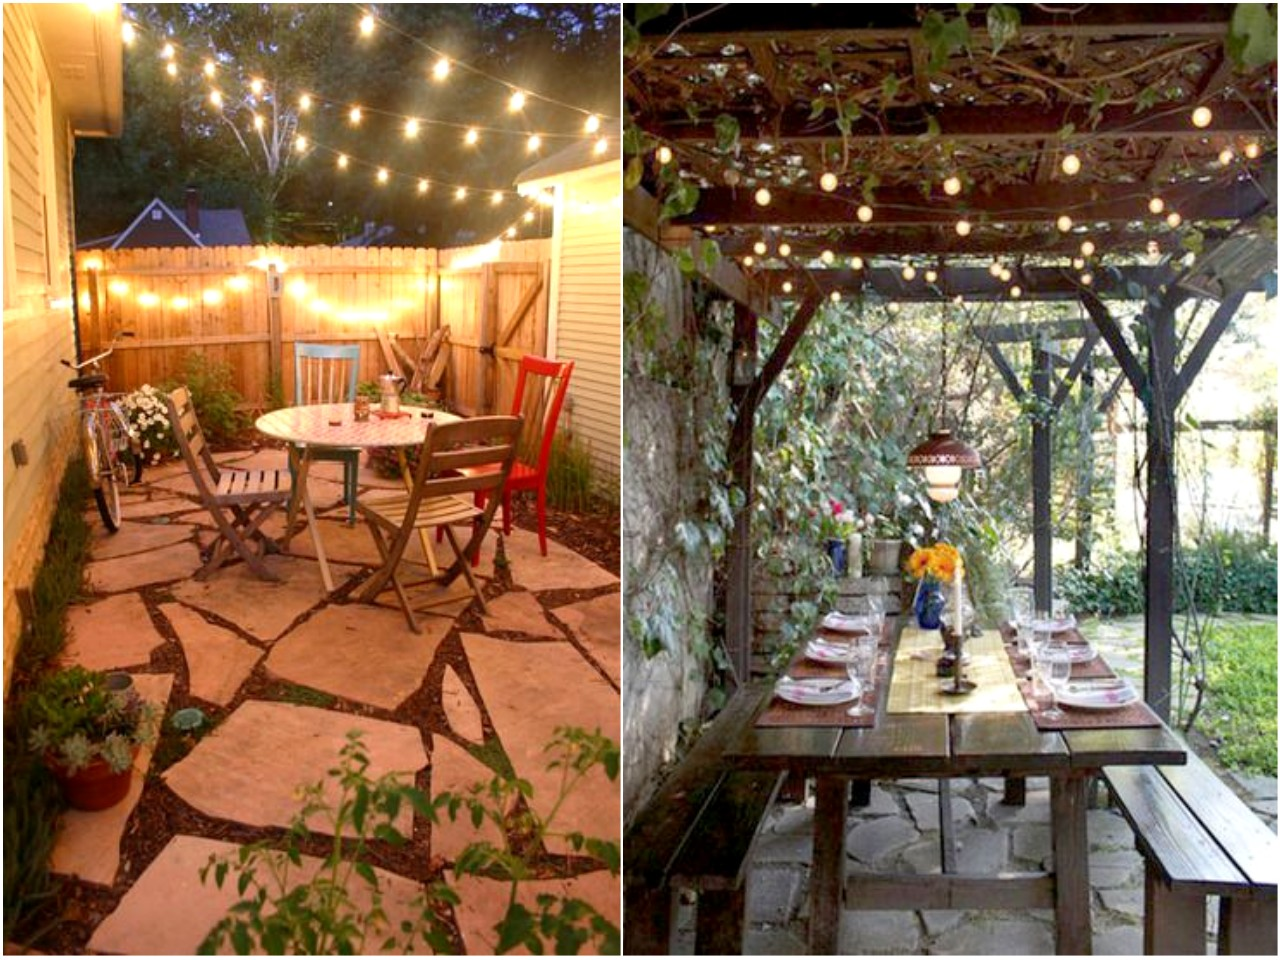 30 ideas para descubrir la decoraci n con luces de colores for Personal en el exterior